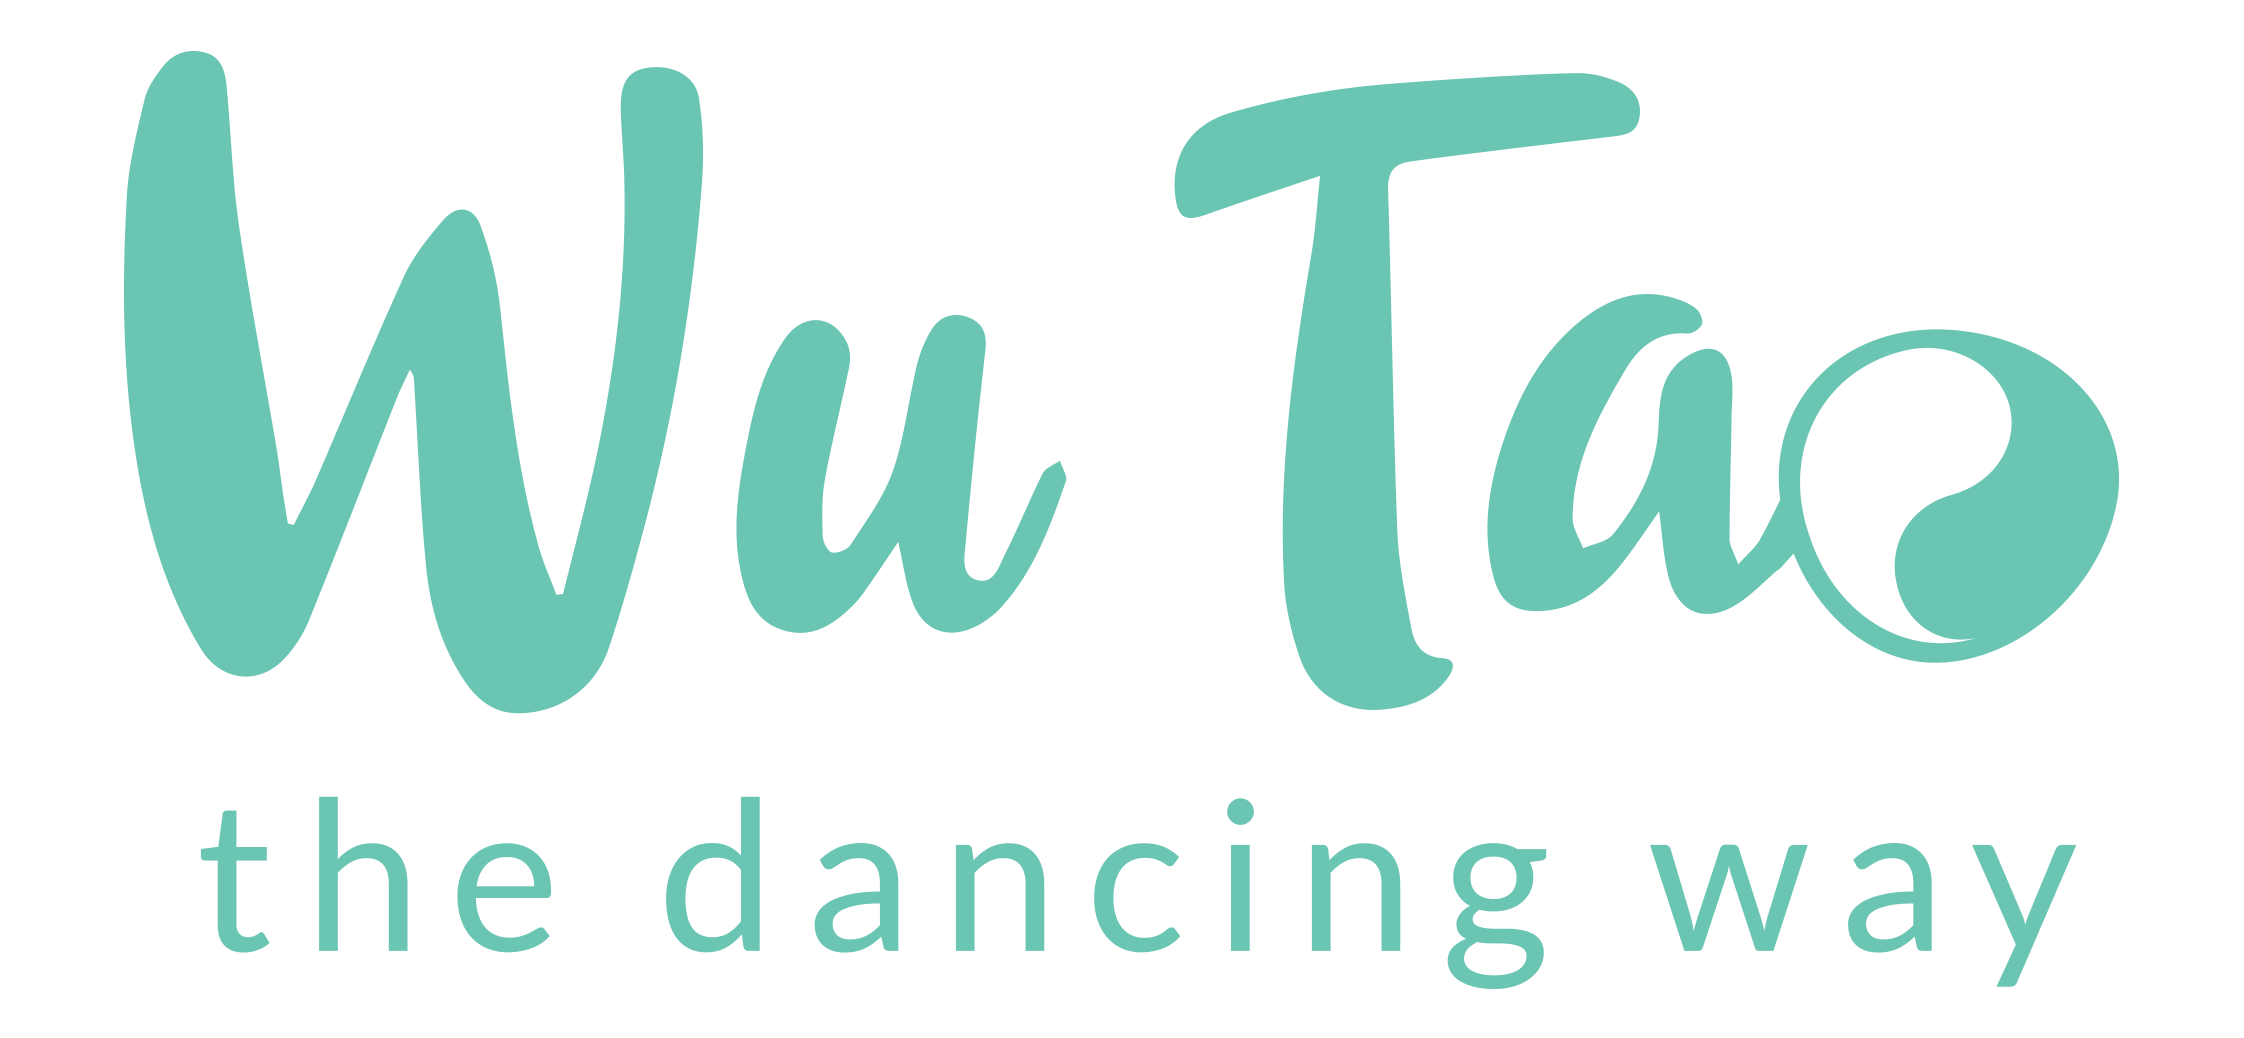 Wu Tao dance therapy logo